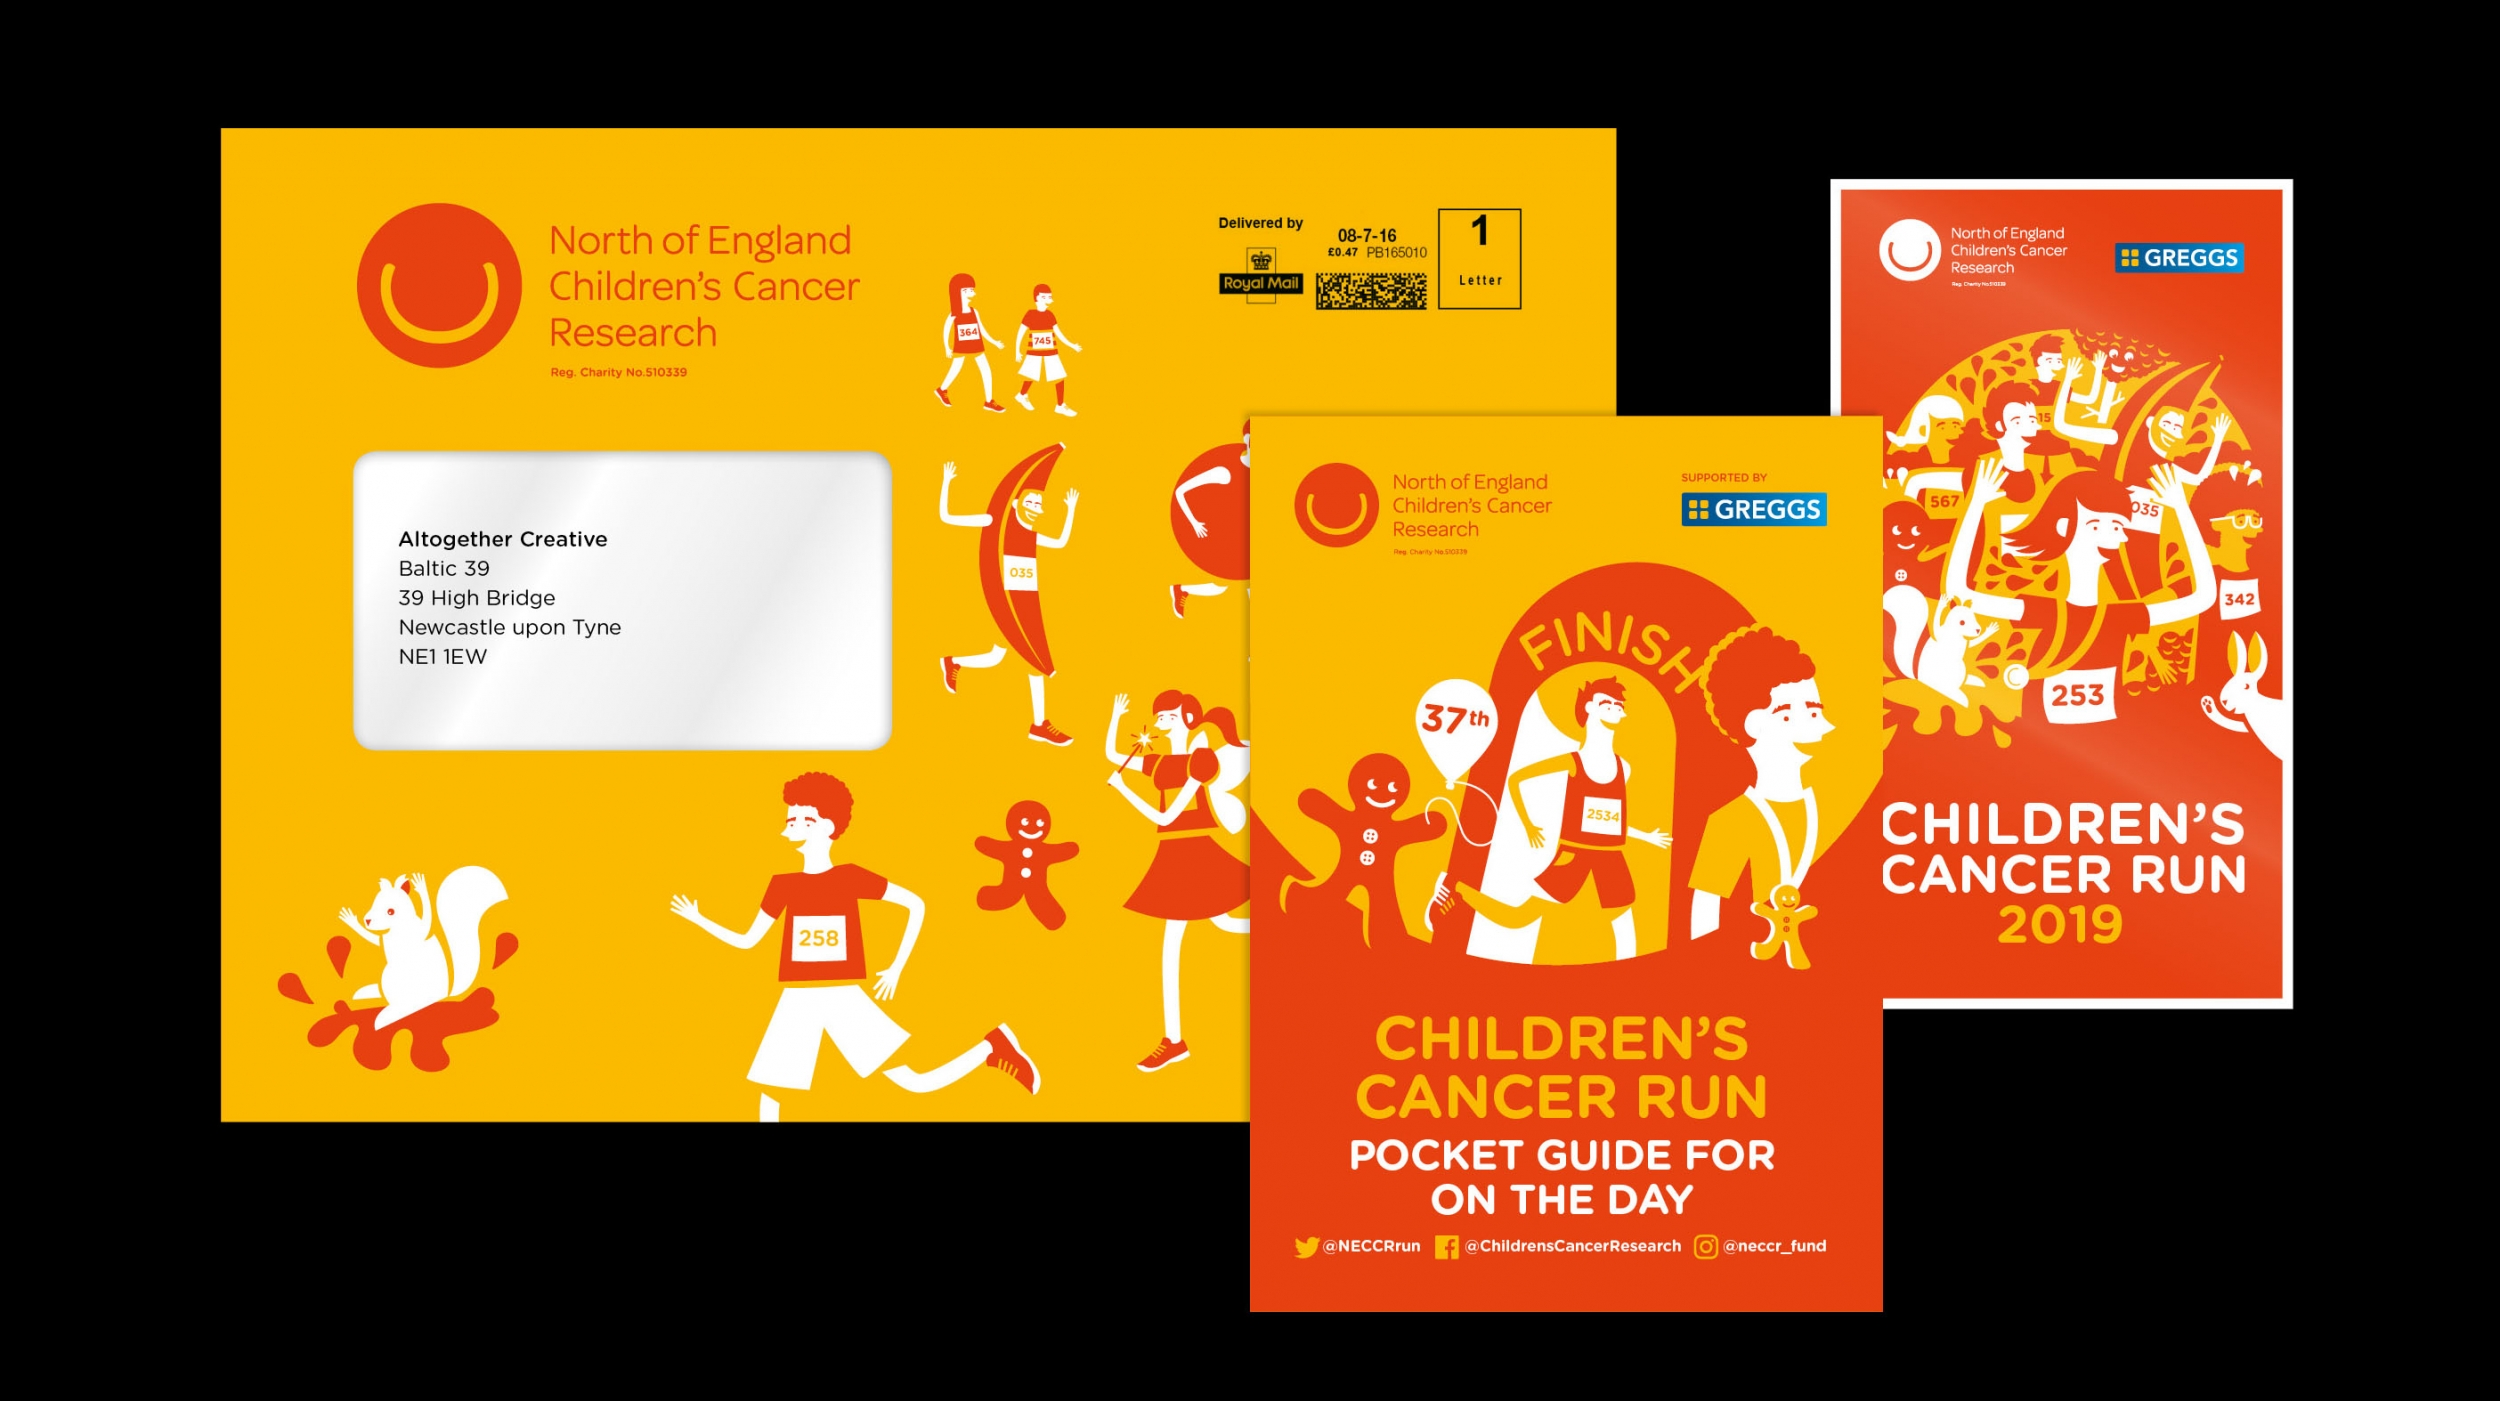 North of England Children's Cancer Research NECCR marketing materials by Altogether Creative.